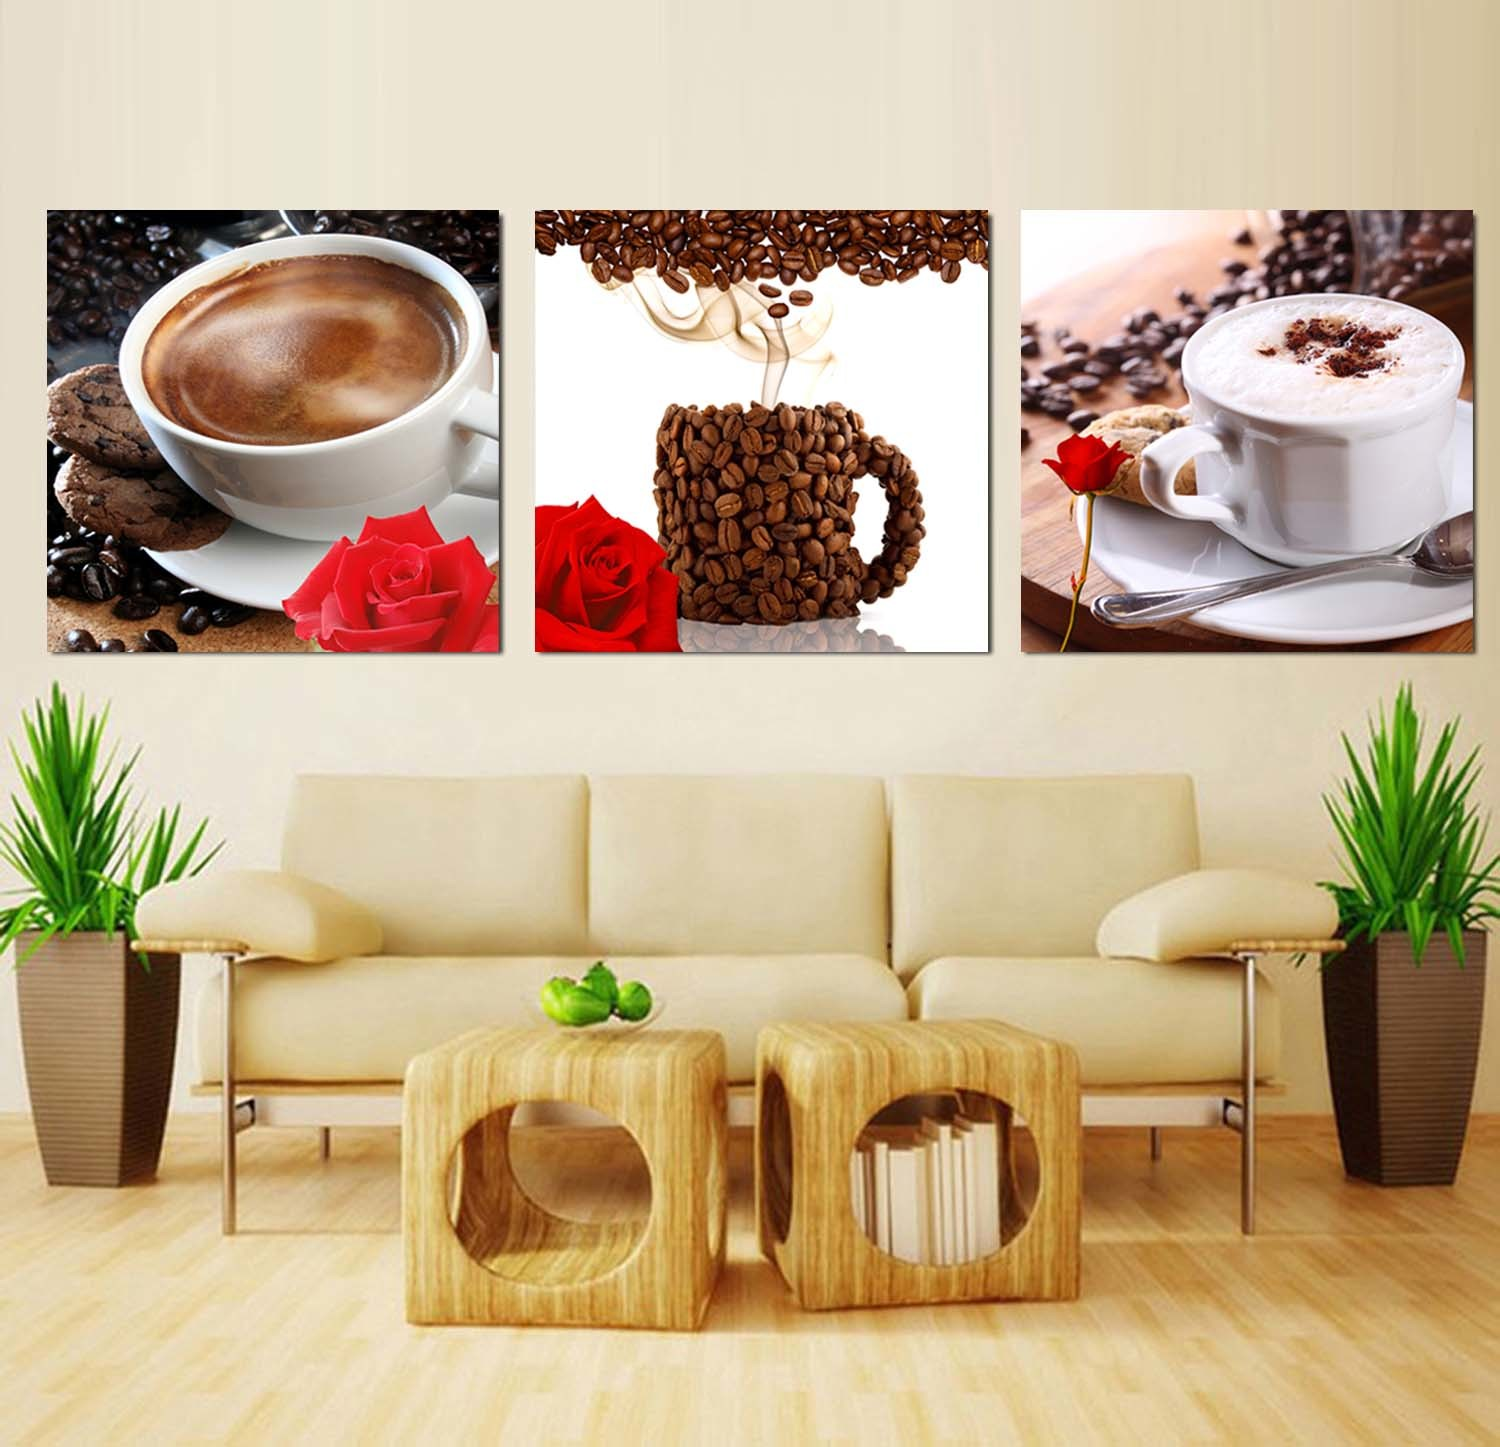 3 Piece Modern Wall Art Printed Painting Coffee Painting Room Decor Framed Art Picture Painted on Canvas Home Decoration Mc-248